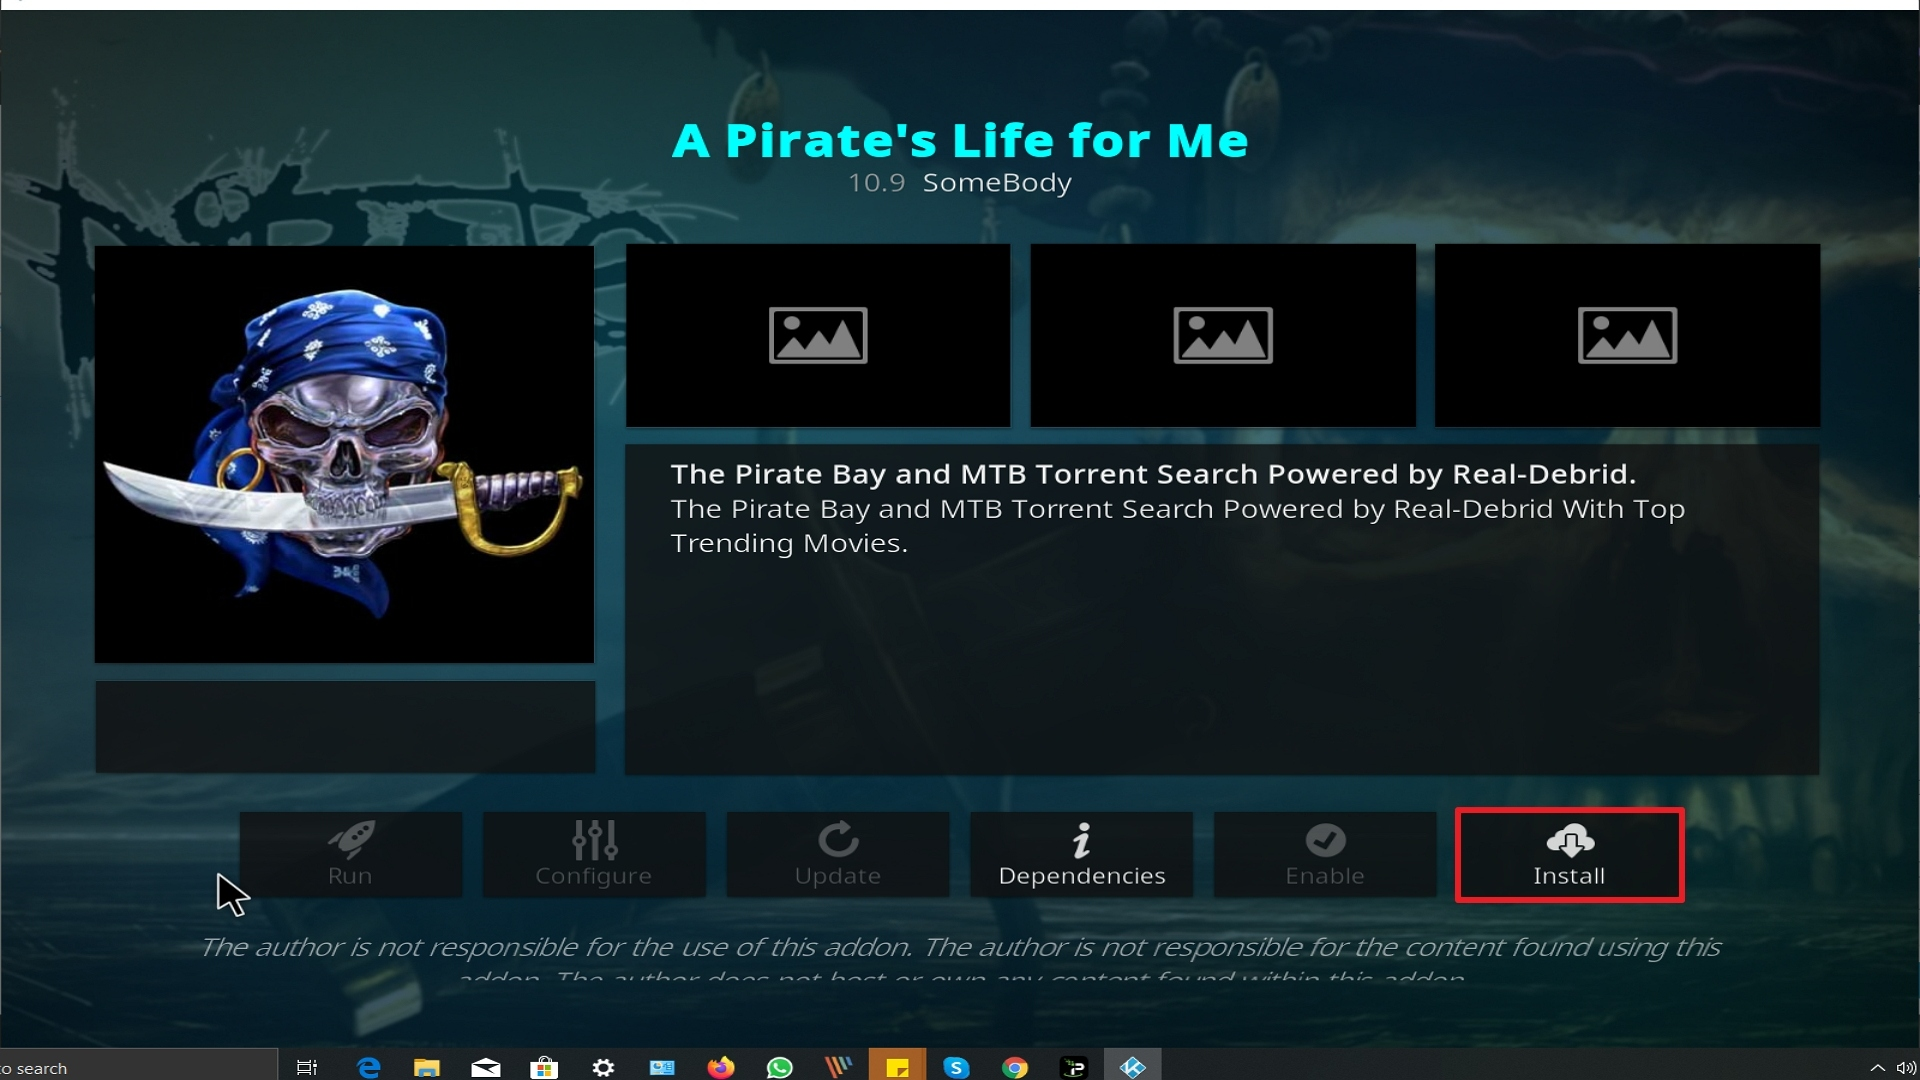 Step 23 Installing A Pirate's Life For Me addon on Kodi